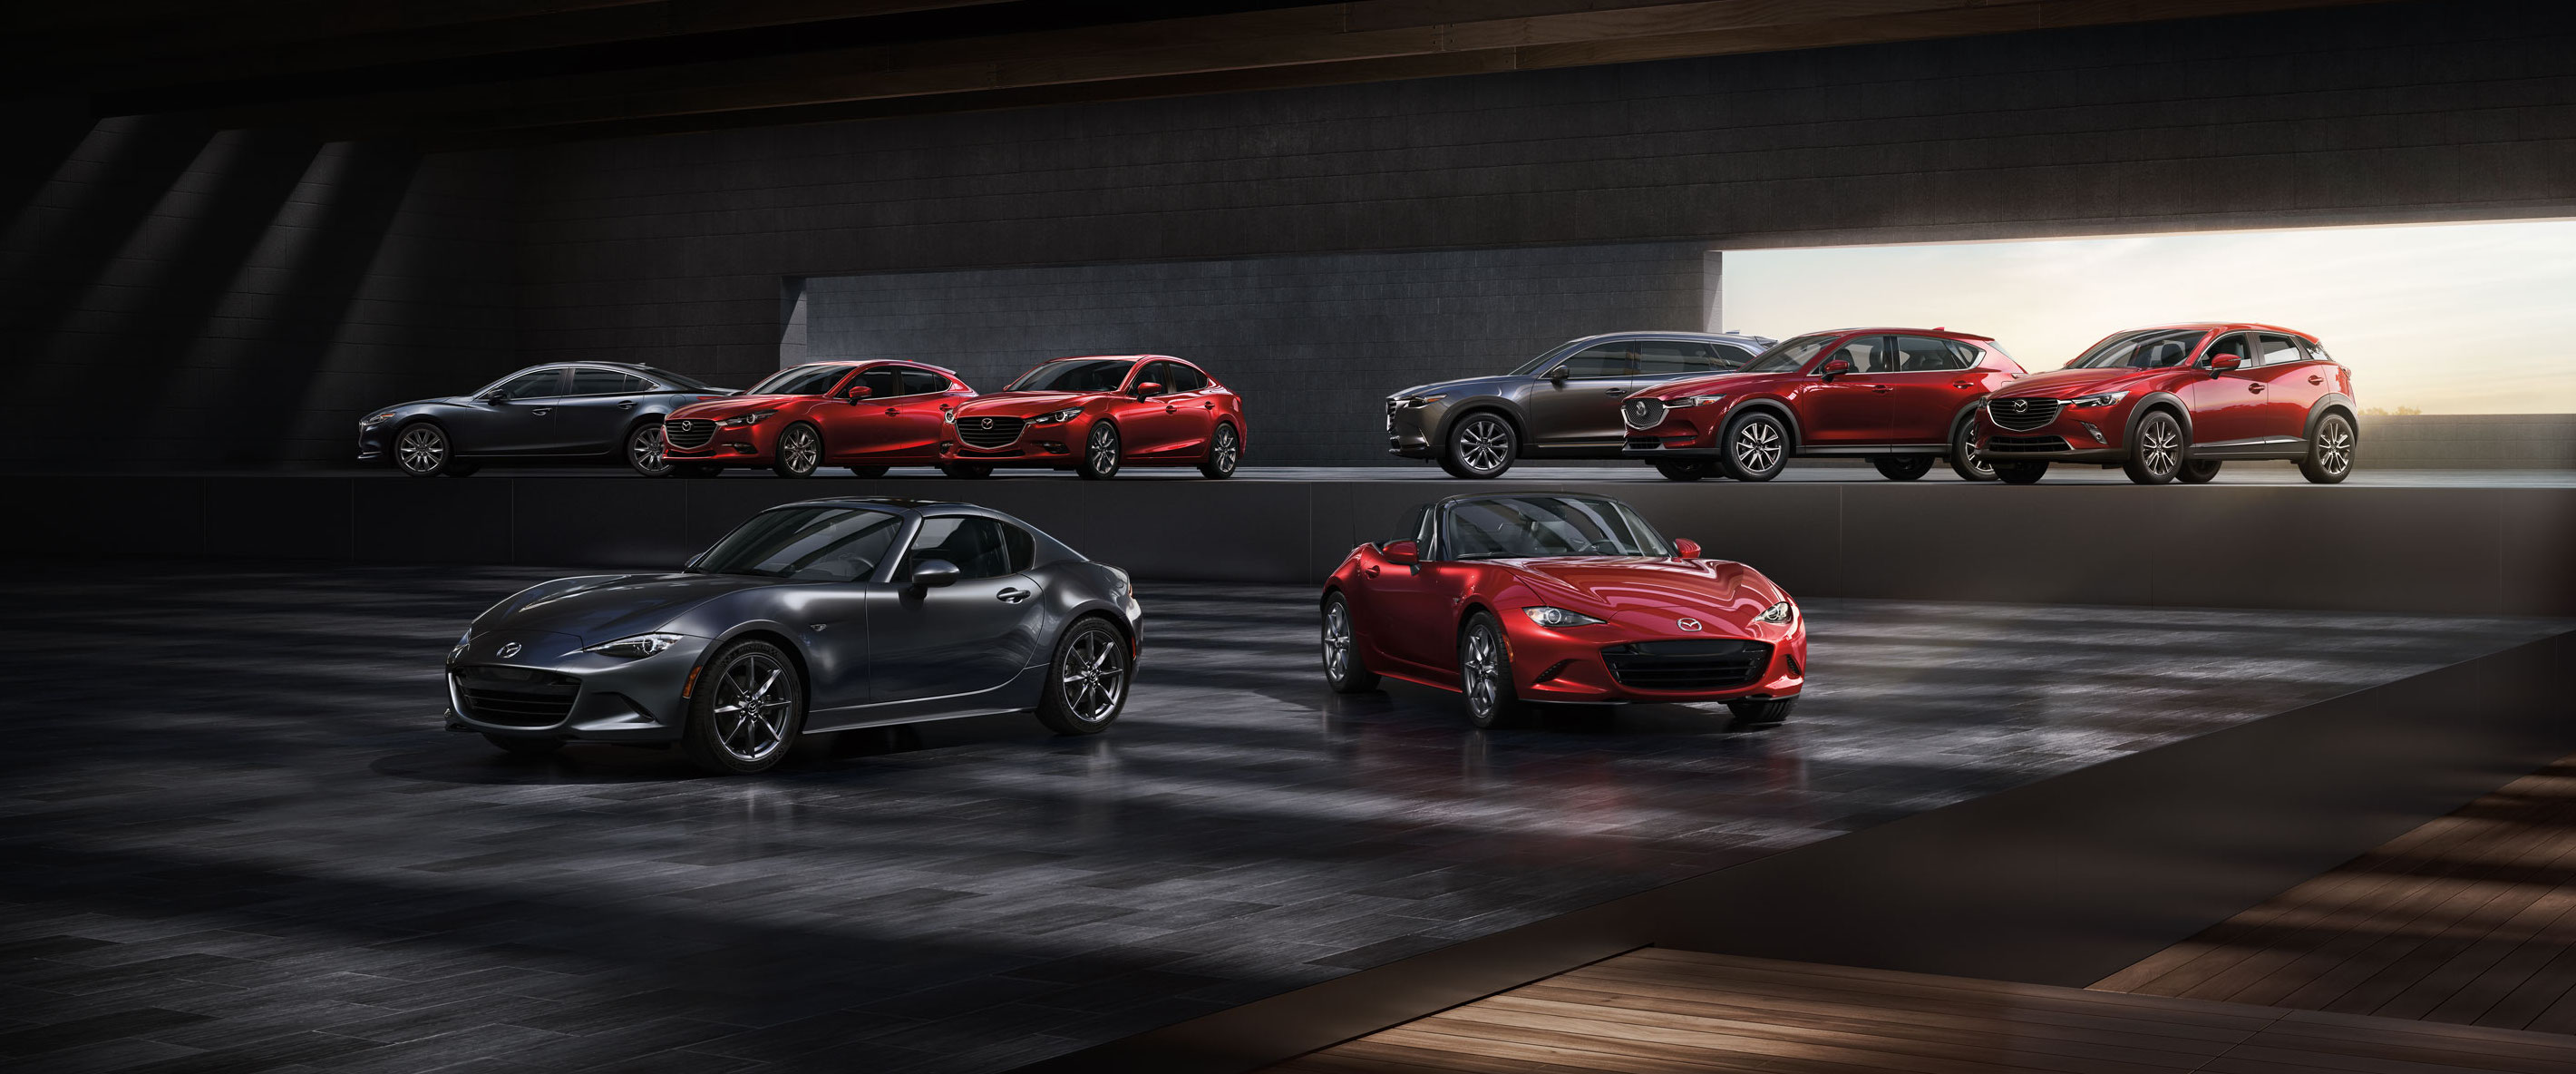 Holiday Special Offer No Payments for 90 Days at Antelope Valley Mazda